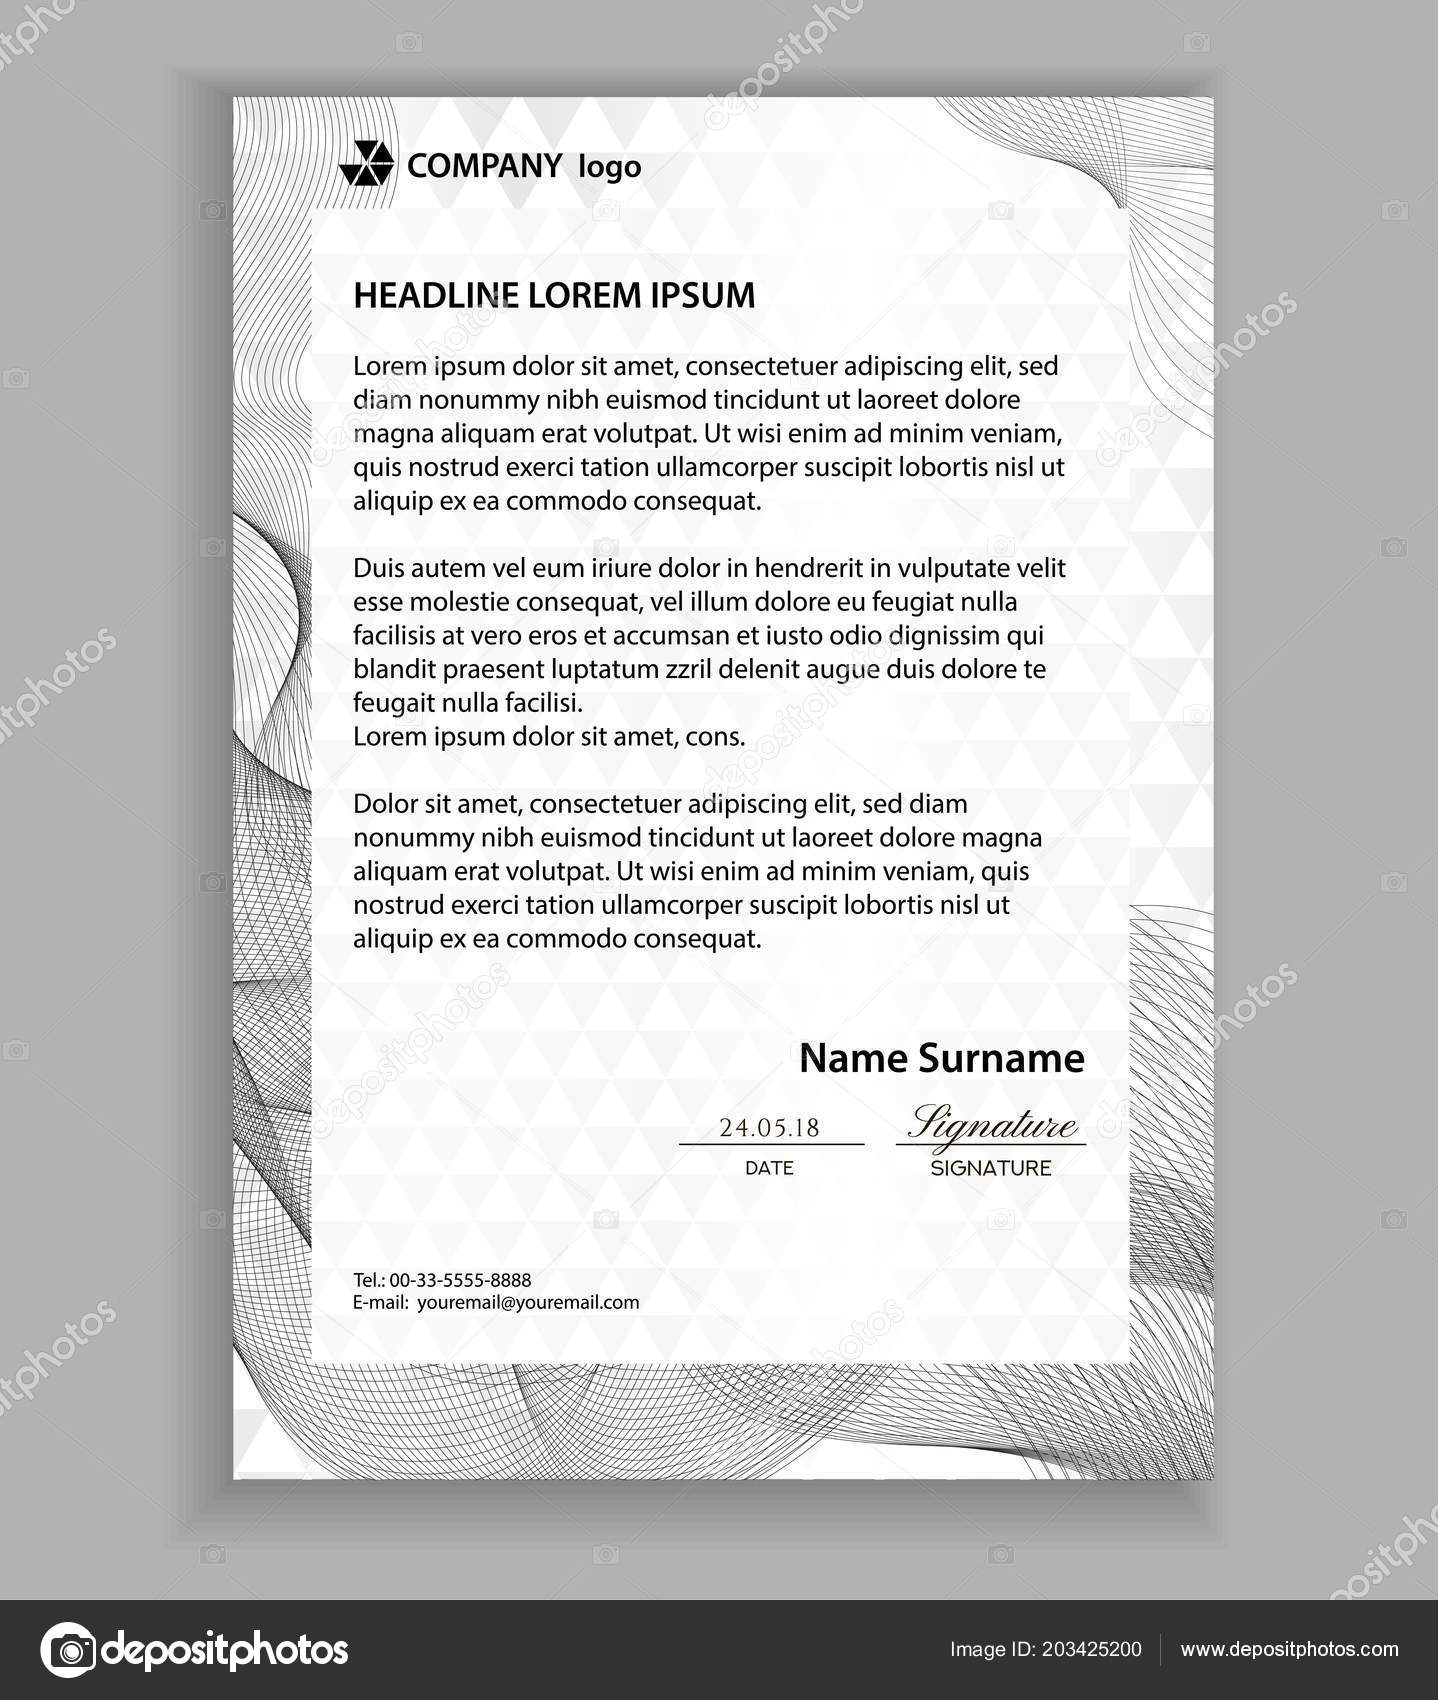 Letterhead template printable business letter layout modern examples letterhead template printable business letter layout modern examples of corporate identity design pages company paper mockup image with guilloche lines spiritdancerdesigns Gallery